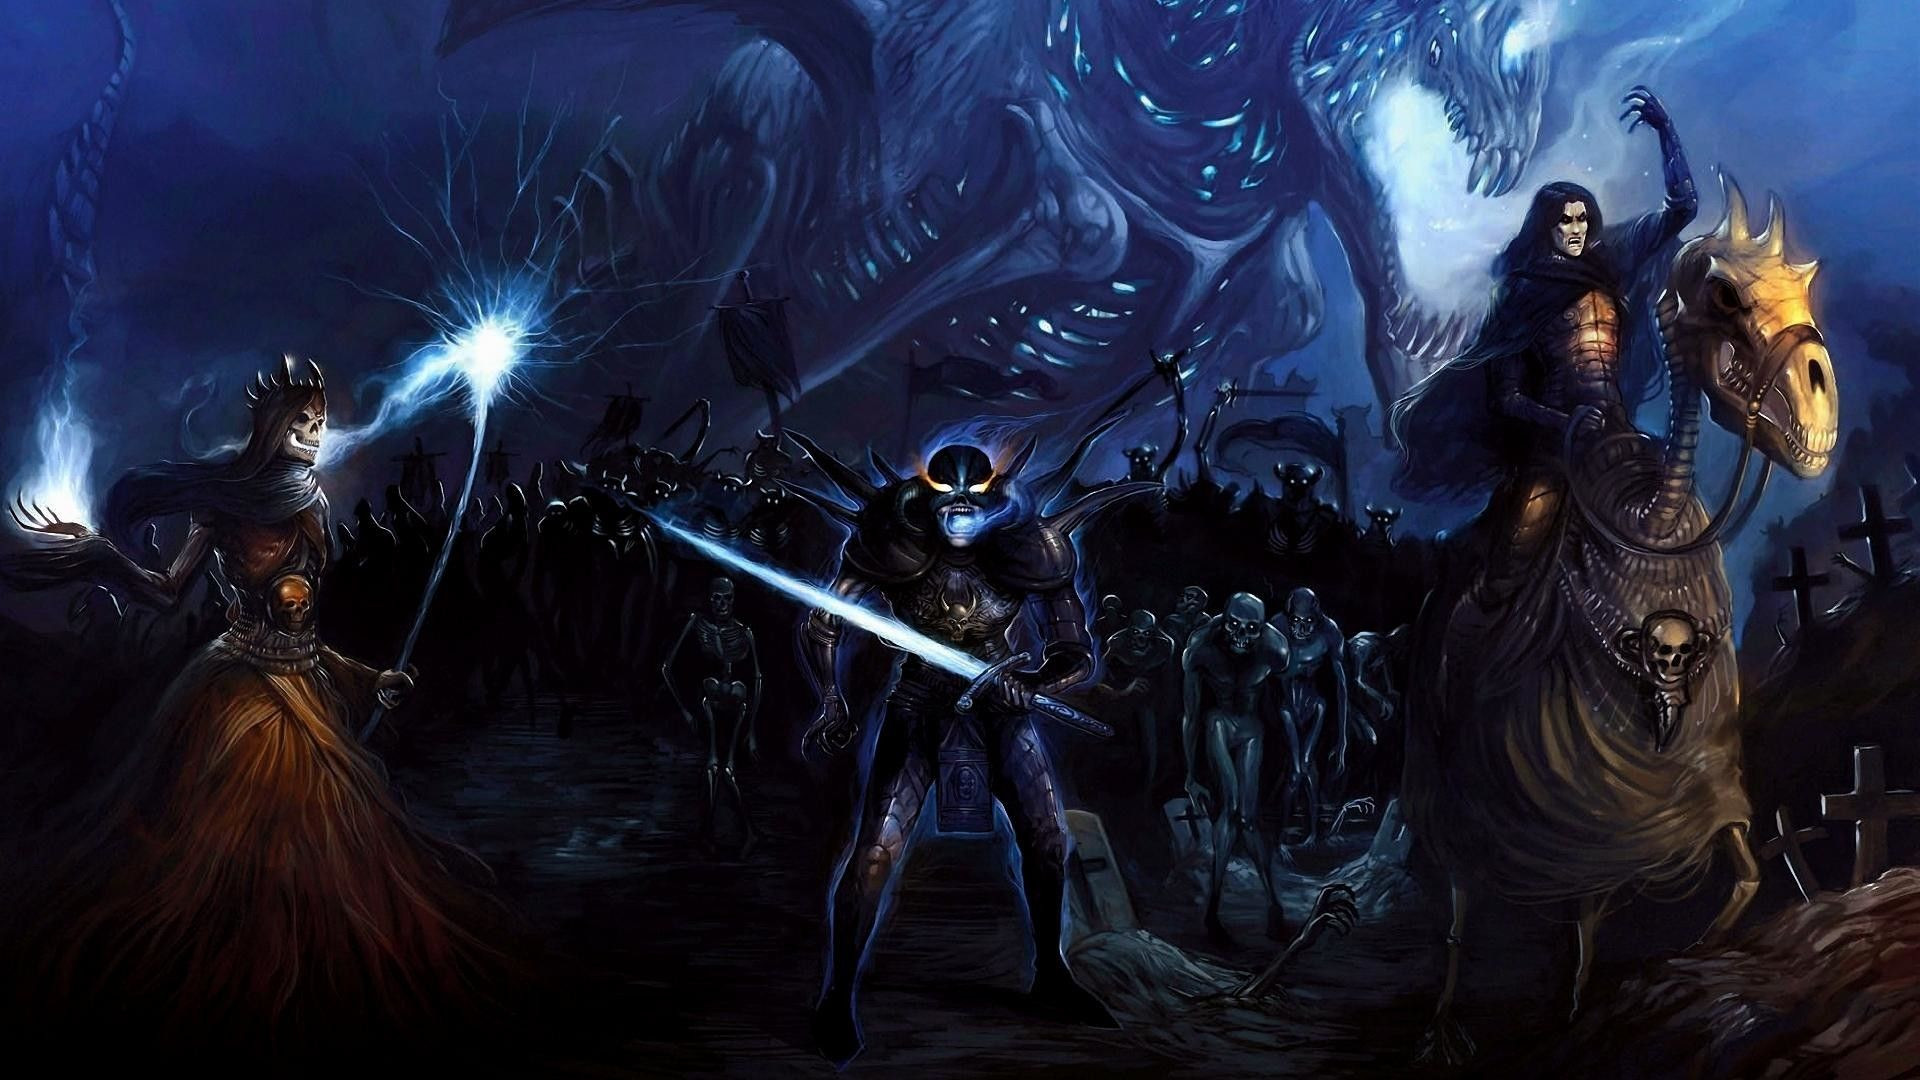 Dungeons And Dragons Game Wallpapers Top Free Dungeons And